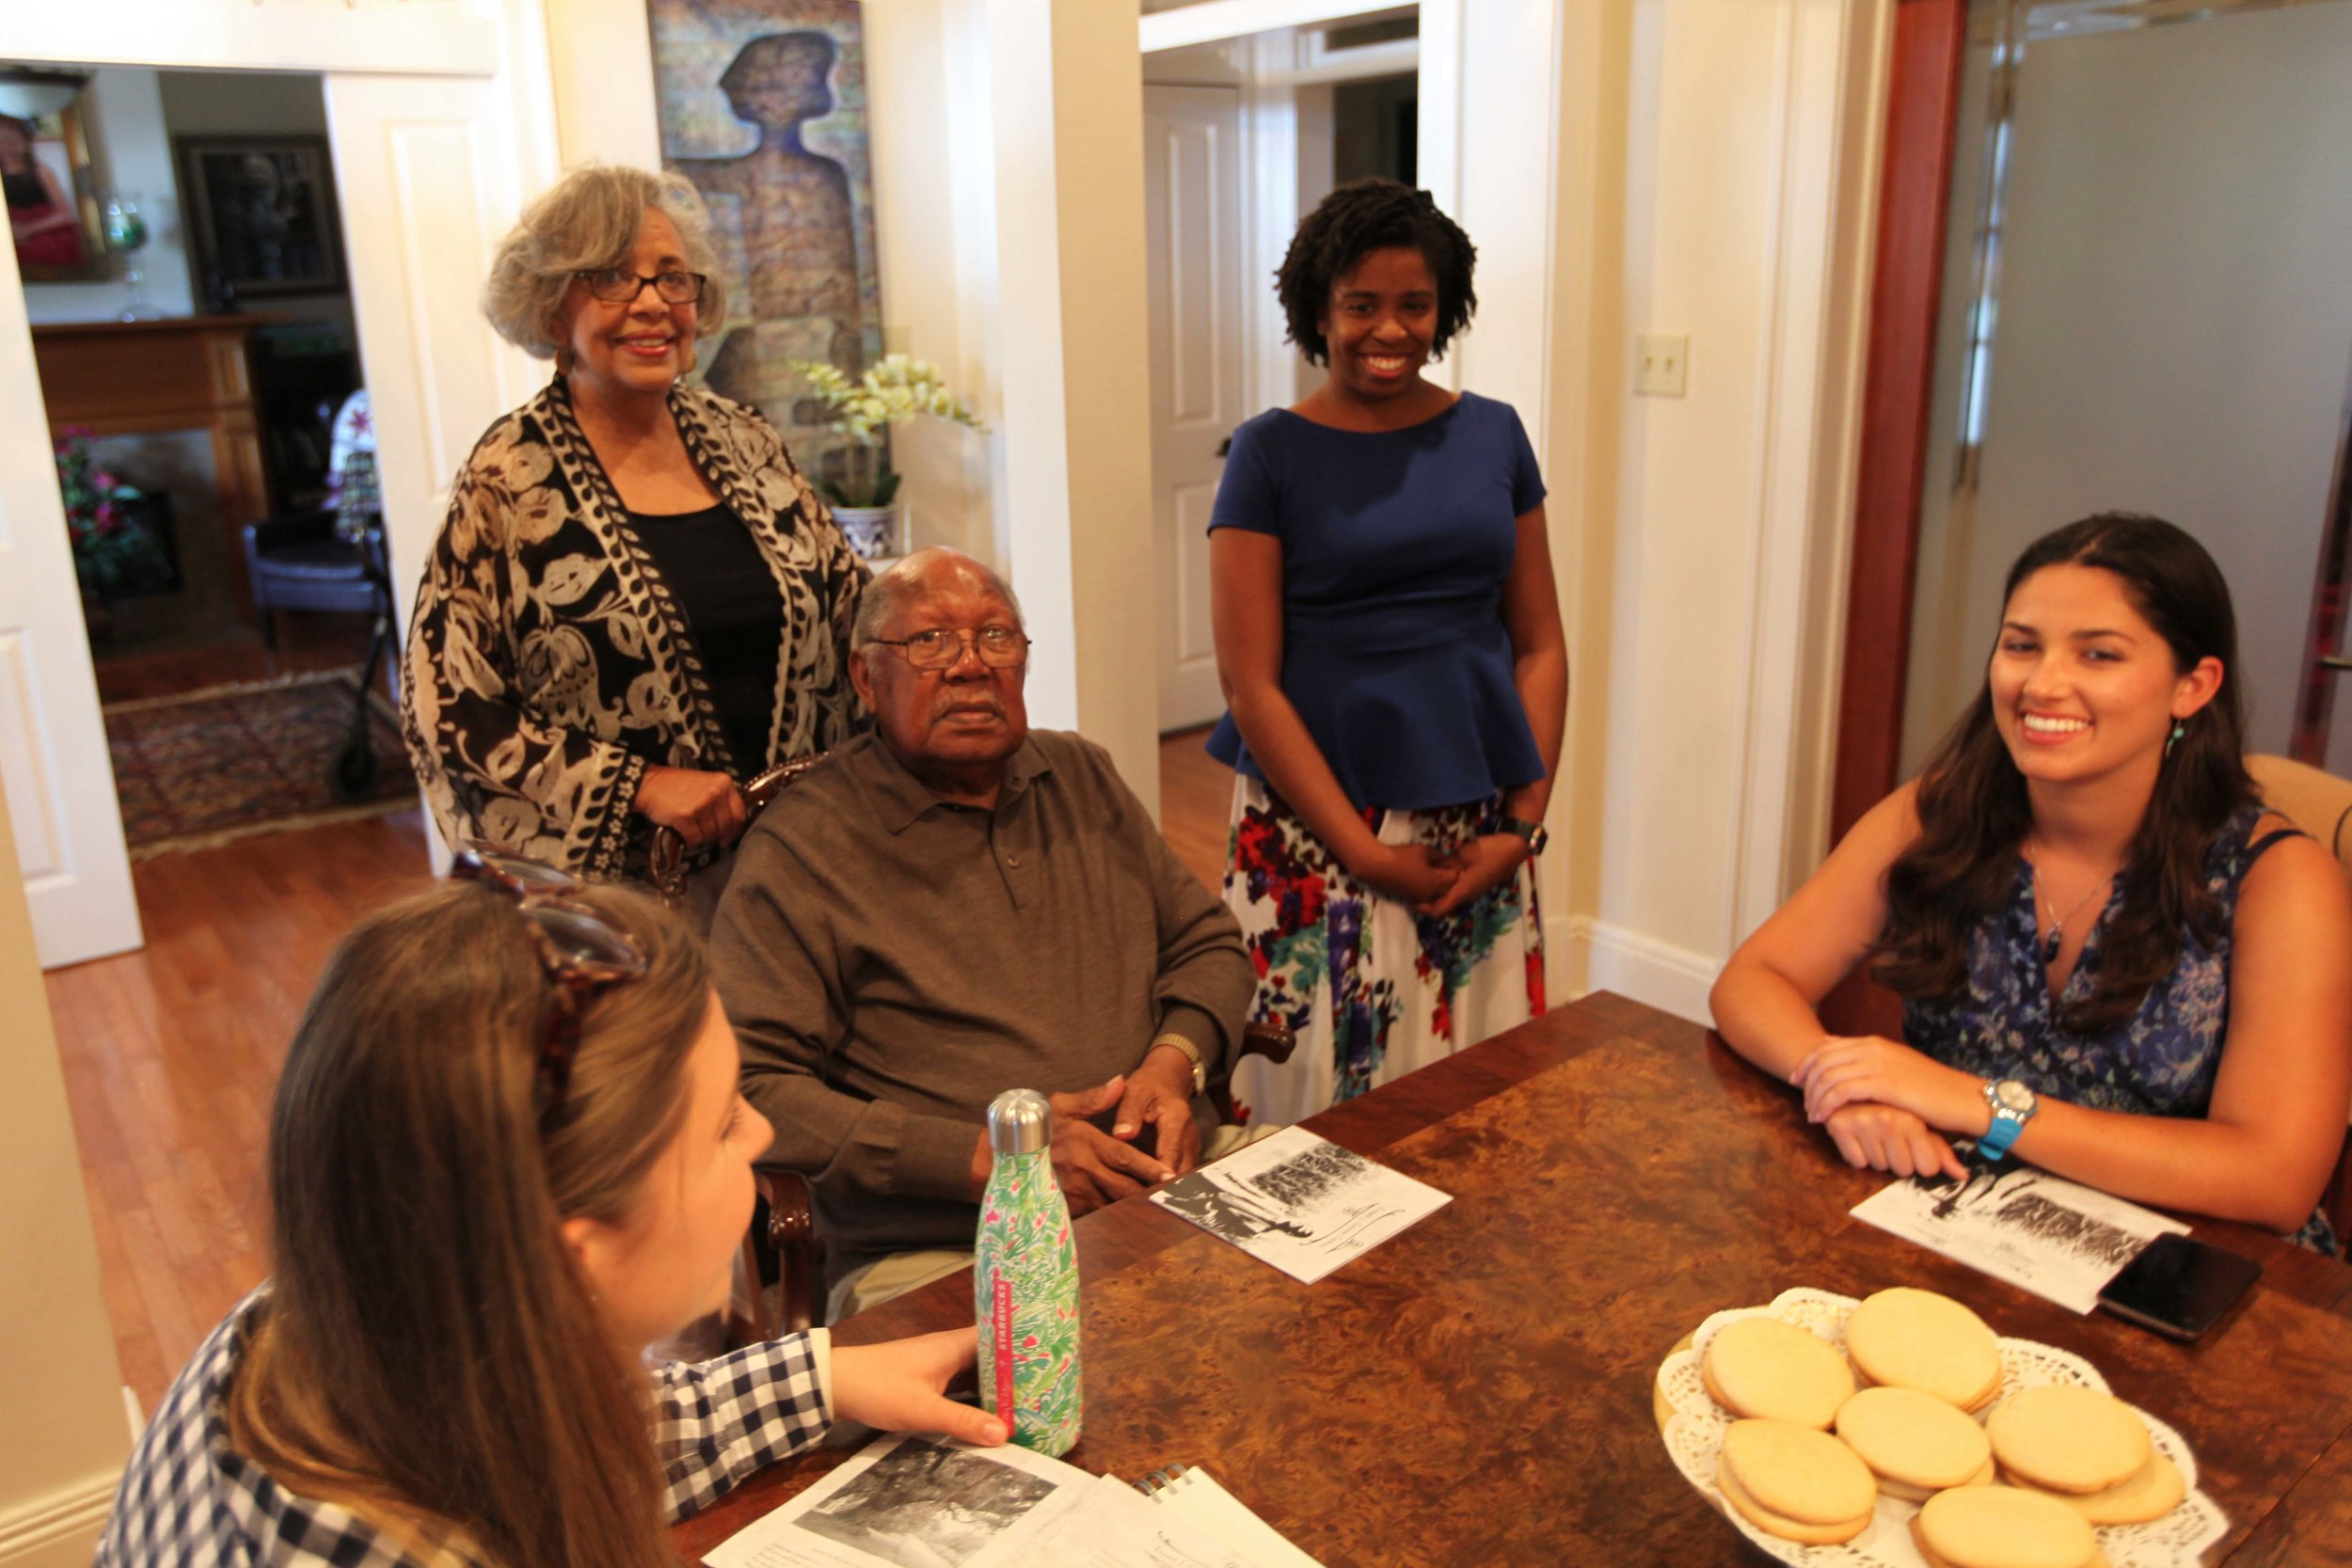 Dianne Gaines, Ernest J. Gaines and Cheylon Woods